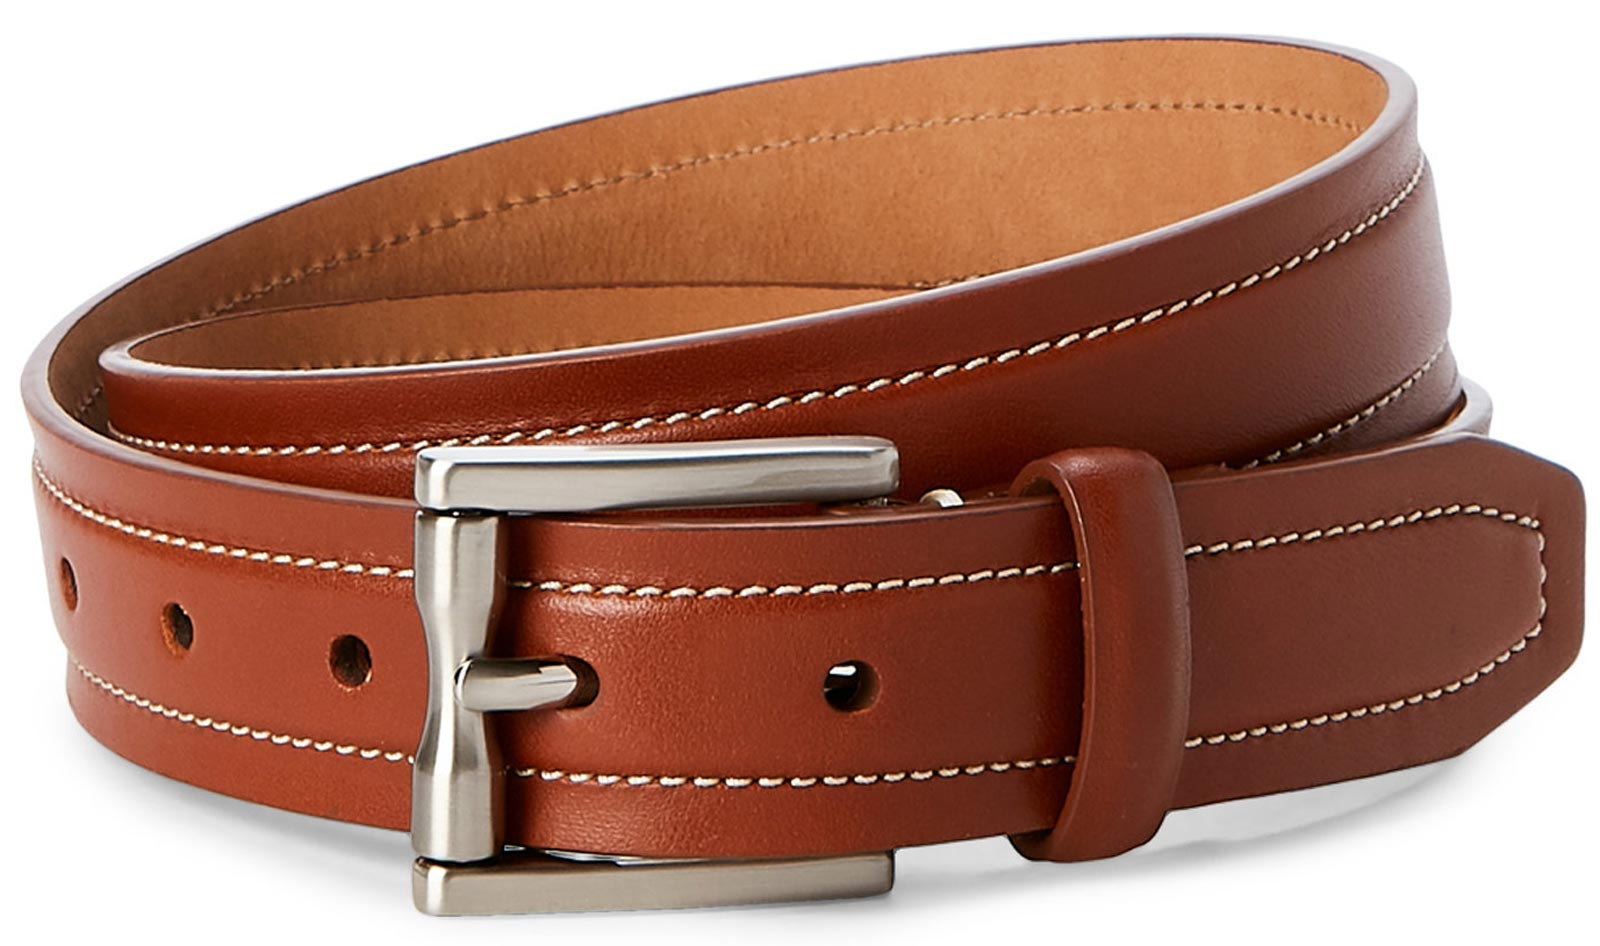 Cole Haan CHRM31047 Men's Brown Leather Belt Size